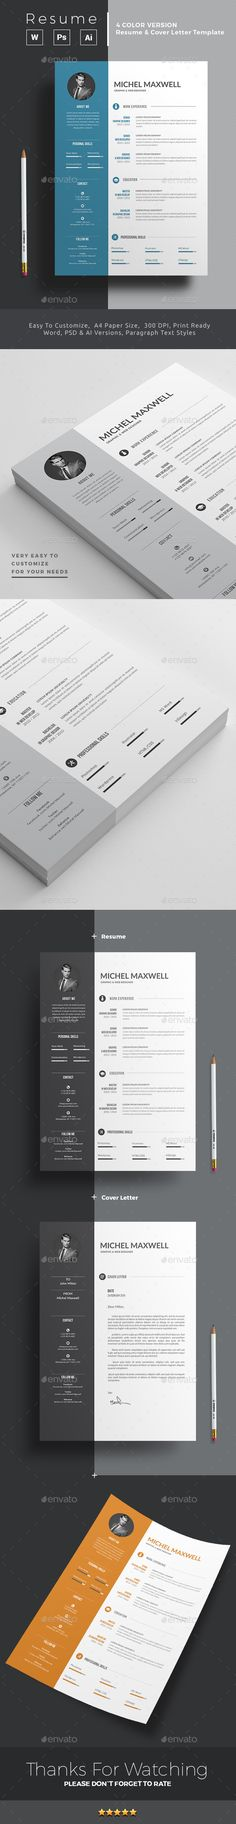 Illustrator Resume Templates Resume Portfolio  Free Business Cards Resume Cv And Cv Design